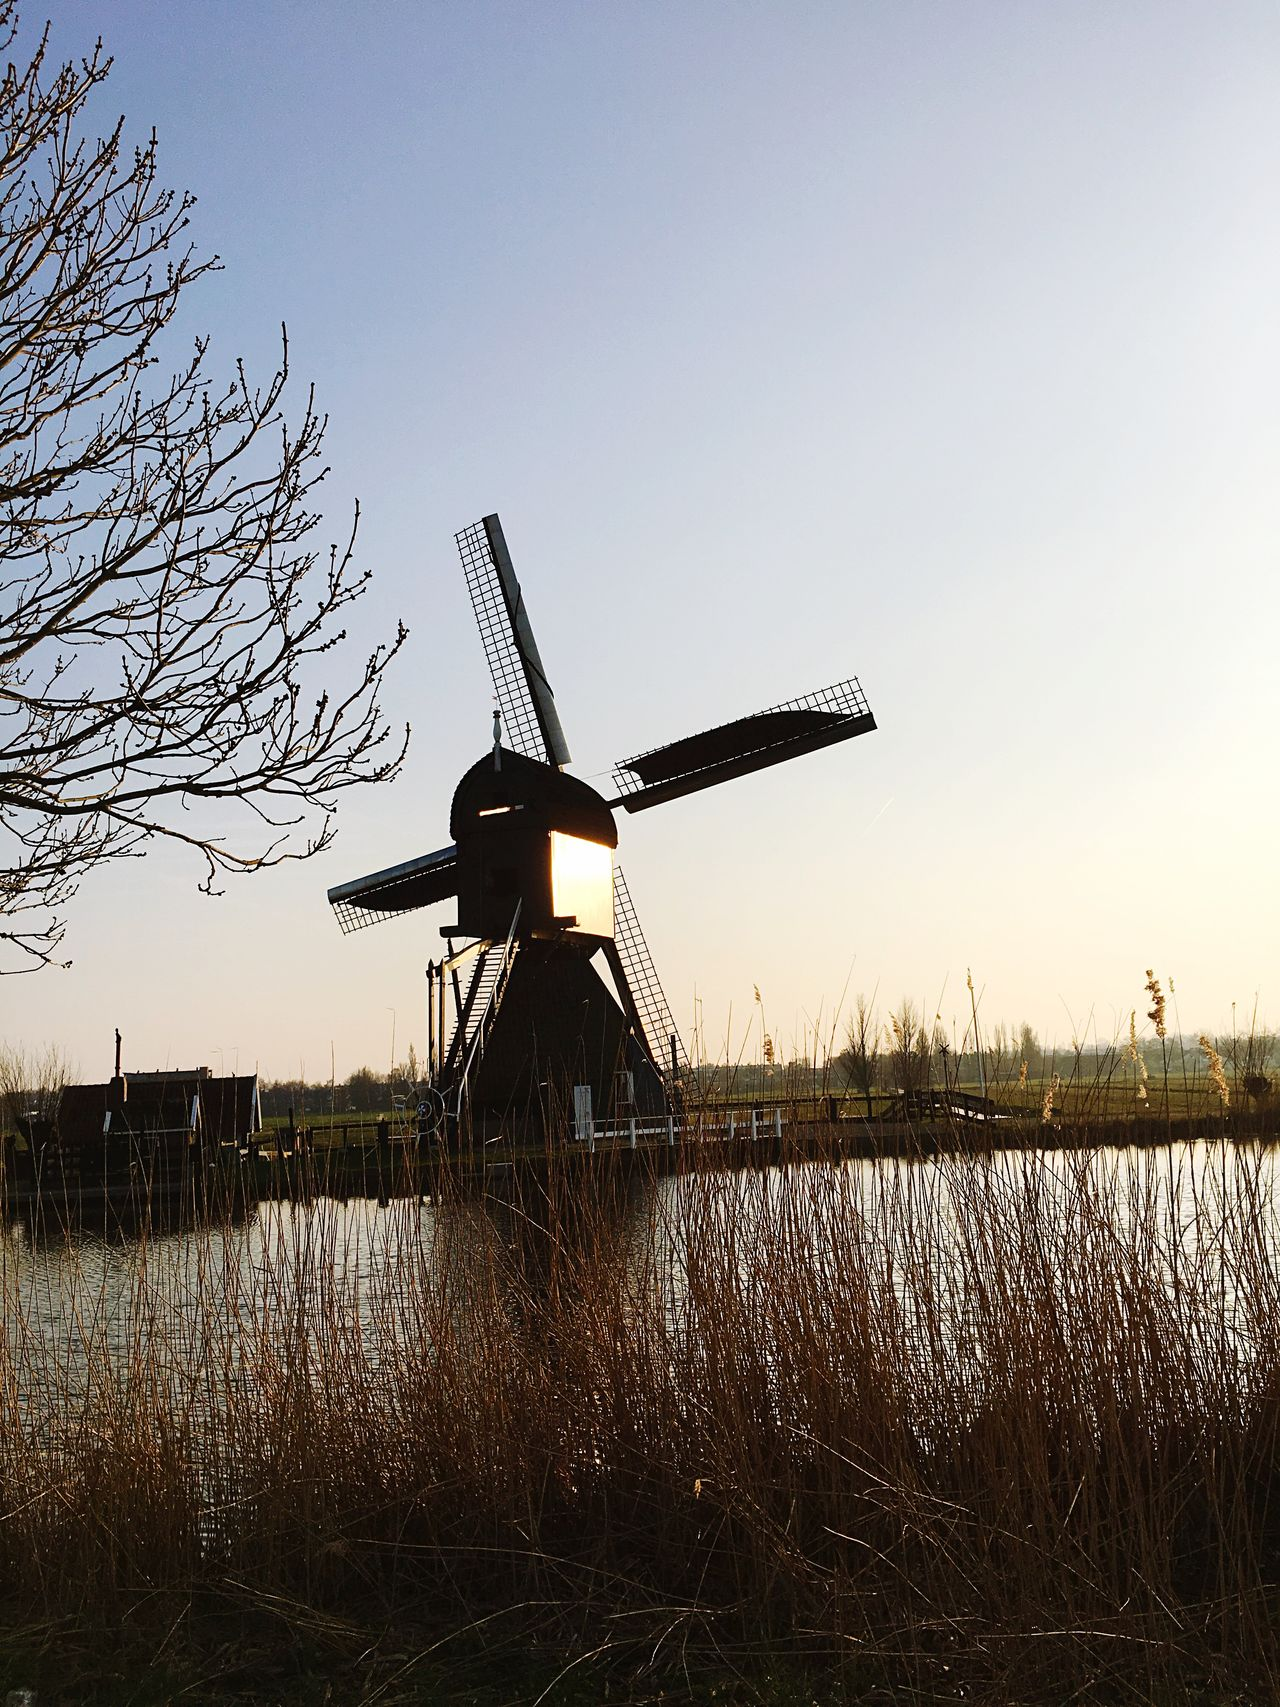 Environmental Conservation Fuel And Power Generation Renewable Energy Alternative Energy Wind Power Wind Turbine Built Structure Windmill Clear Sky No People Field Nature Outdoors Sky Grass Architecture Rural Scene Day Tree Technology